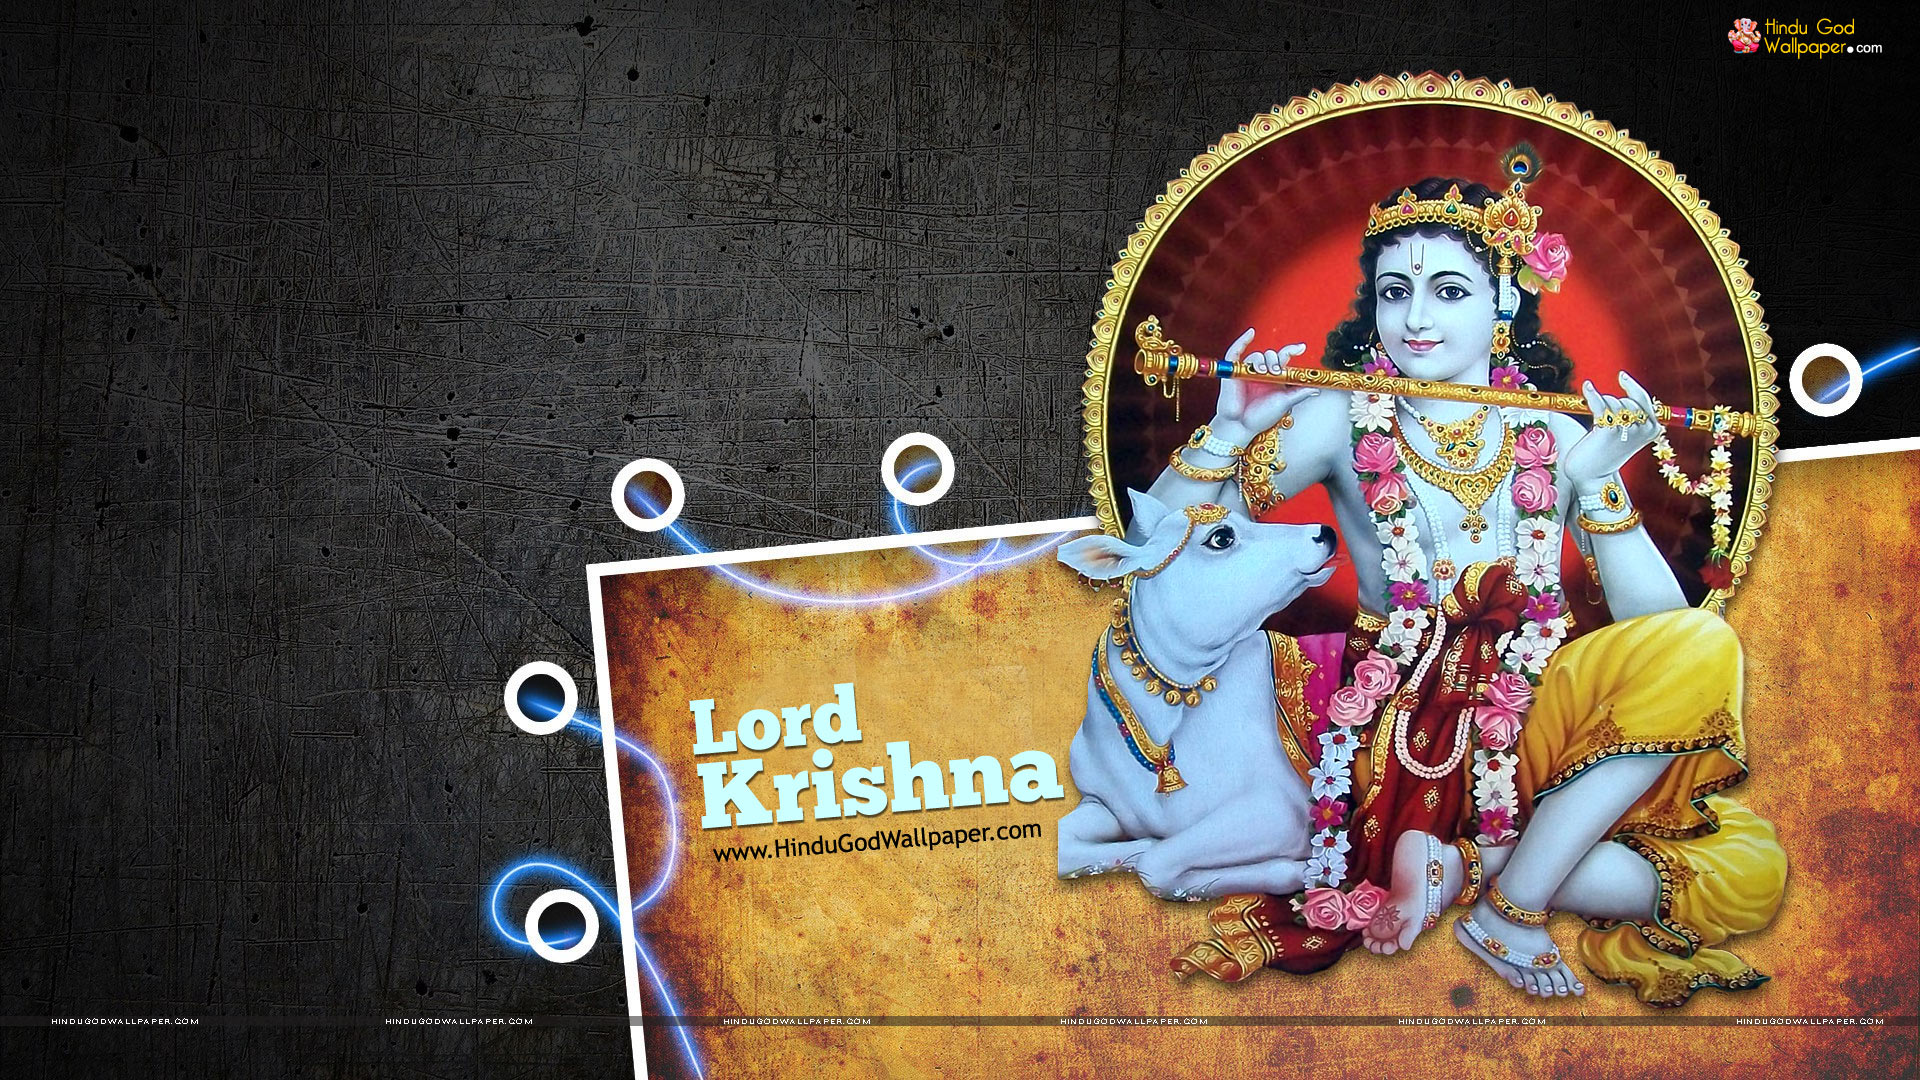 Lord Krishna HD wallpaper for download in laptop and desktop